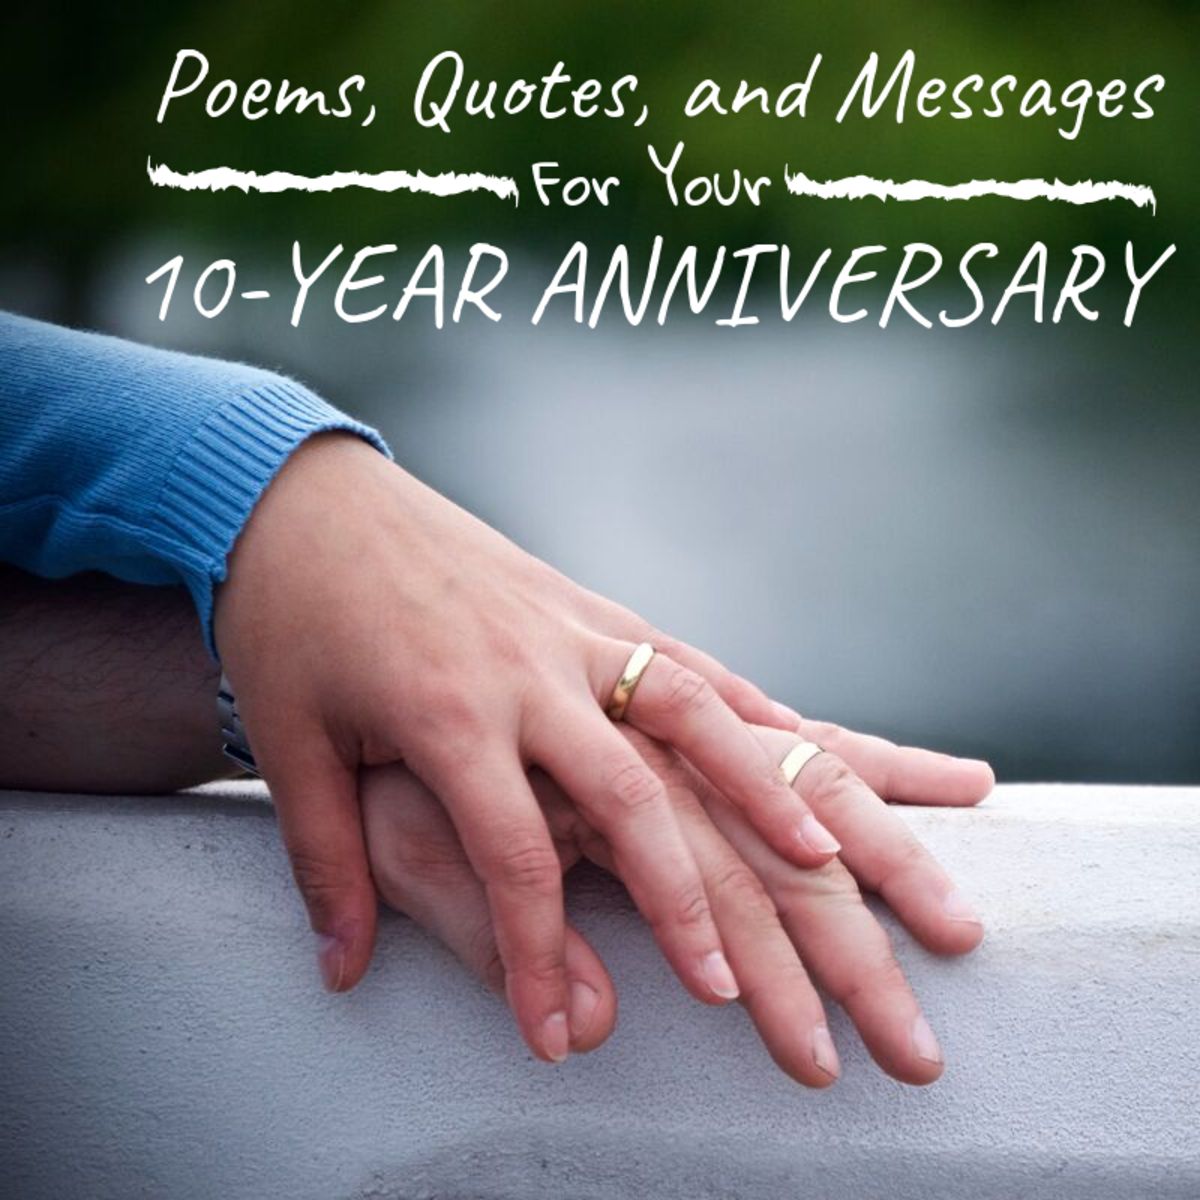 10th Anniversary Wishes, Quotes, and Poems to Write in a Card